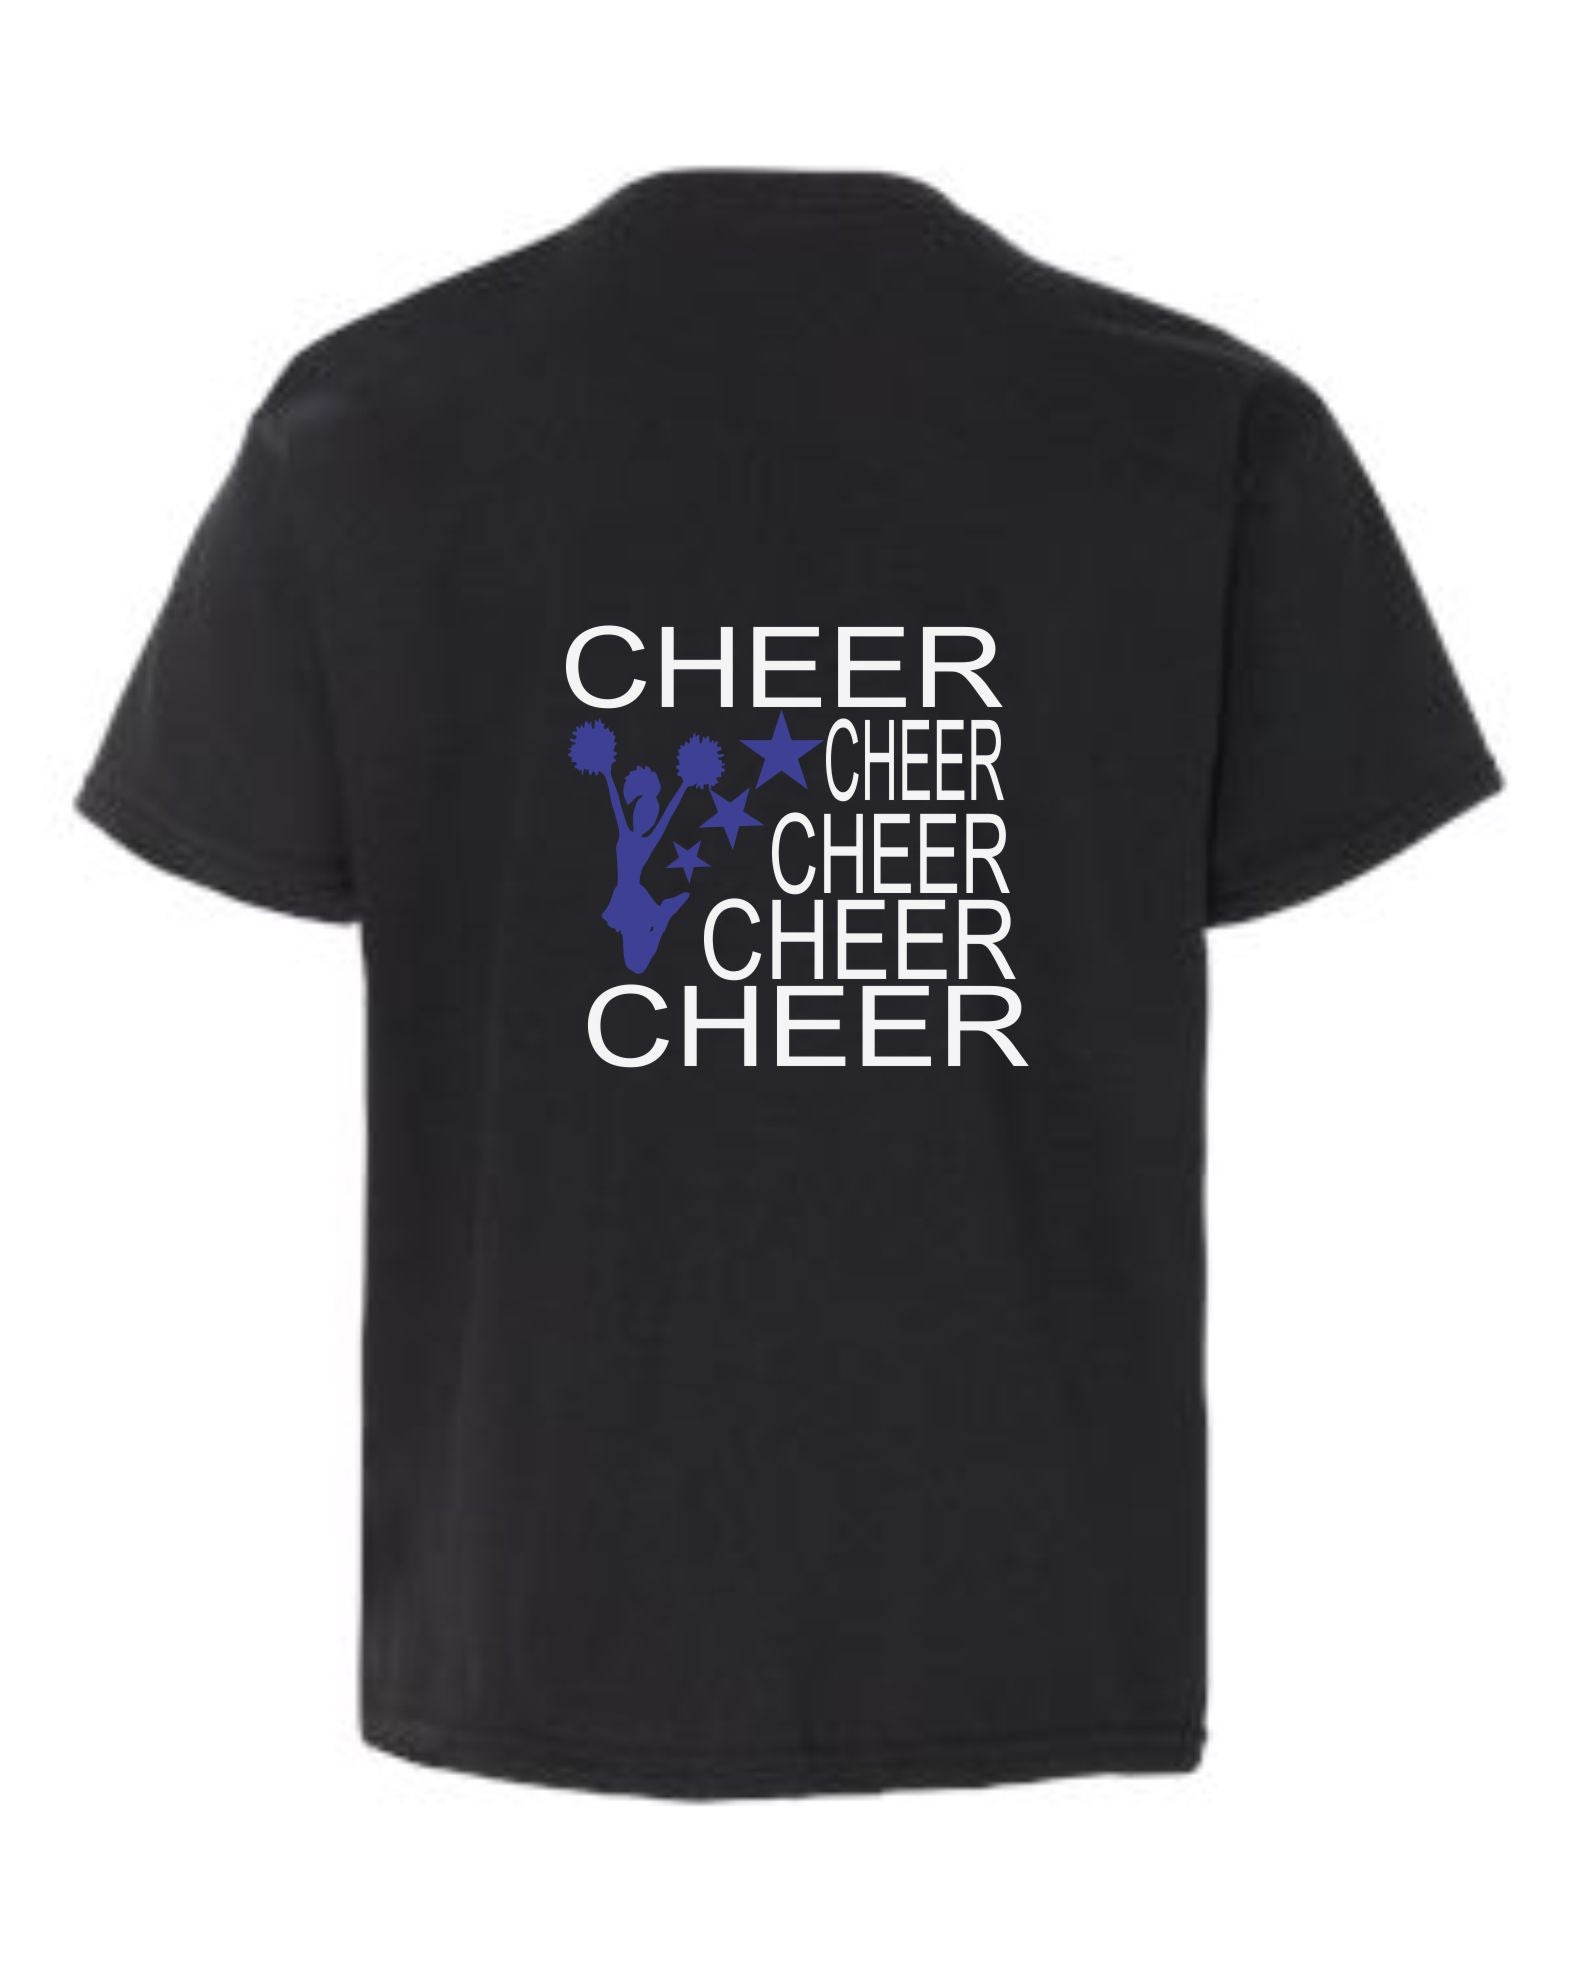 5 Cheers with Cheerleader and Stars